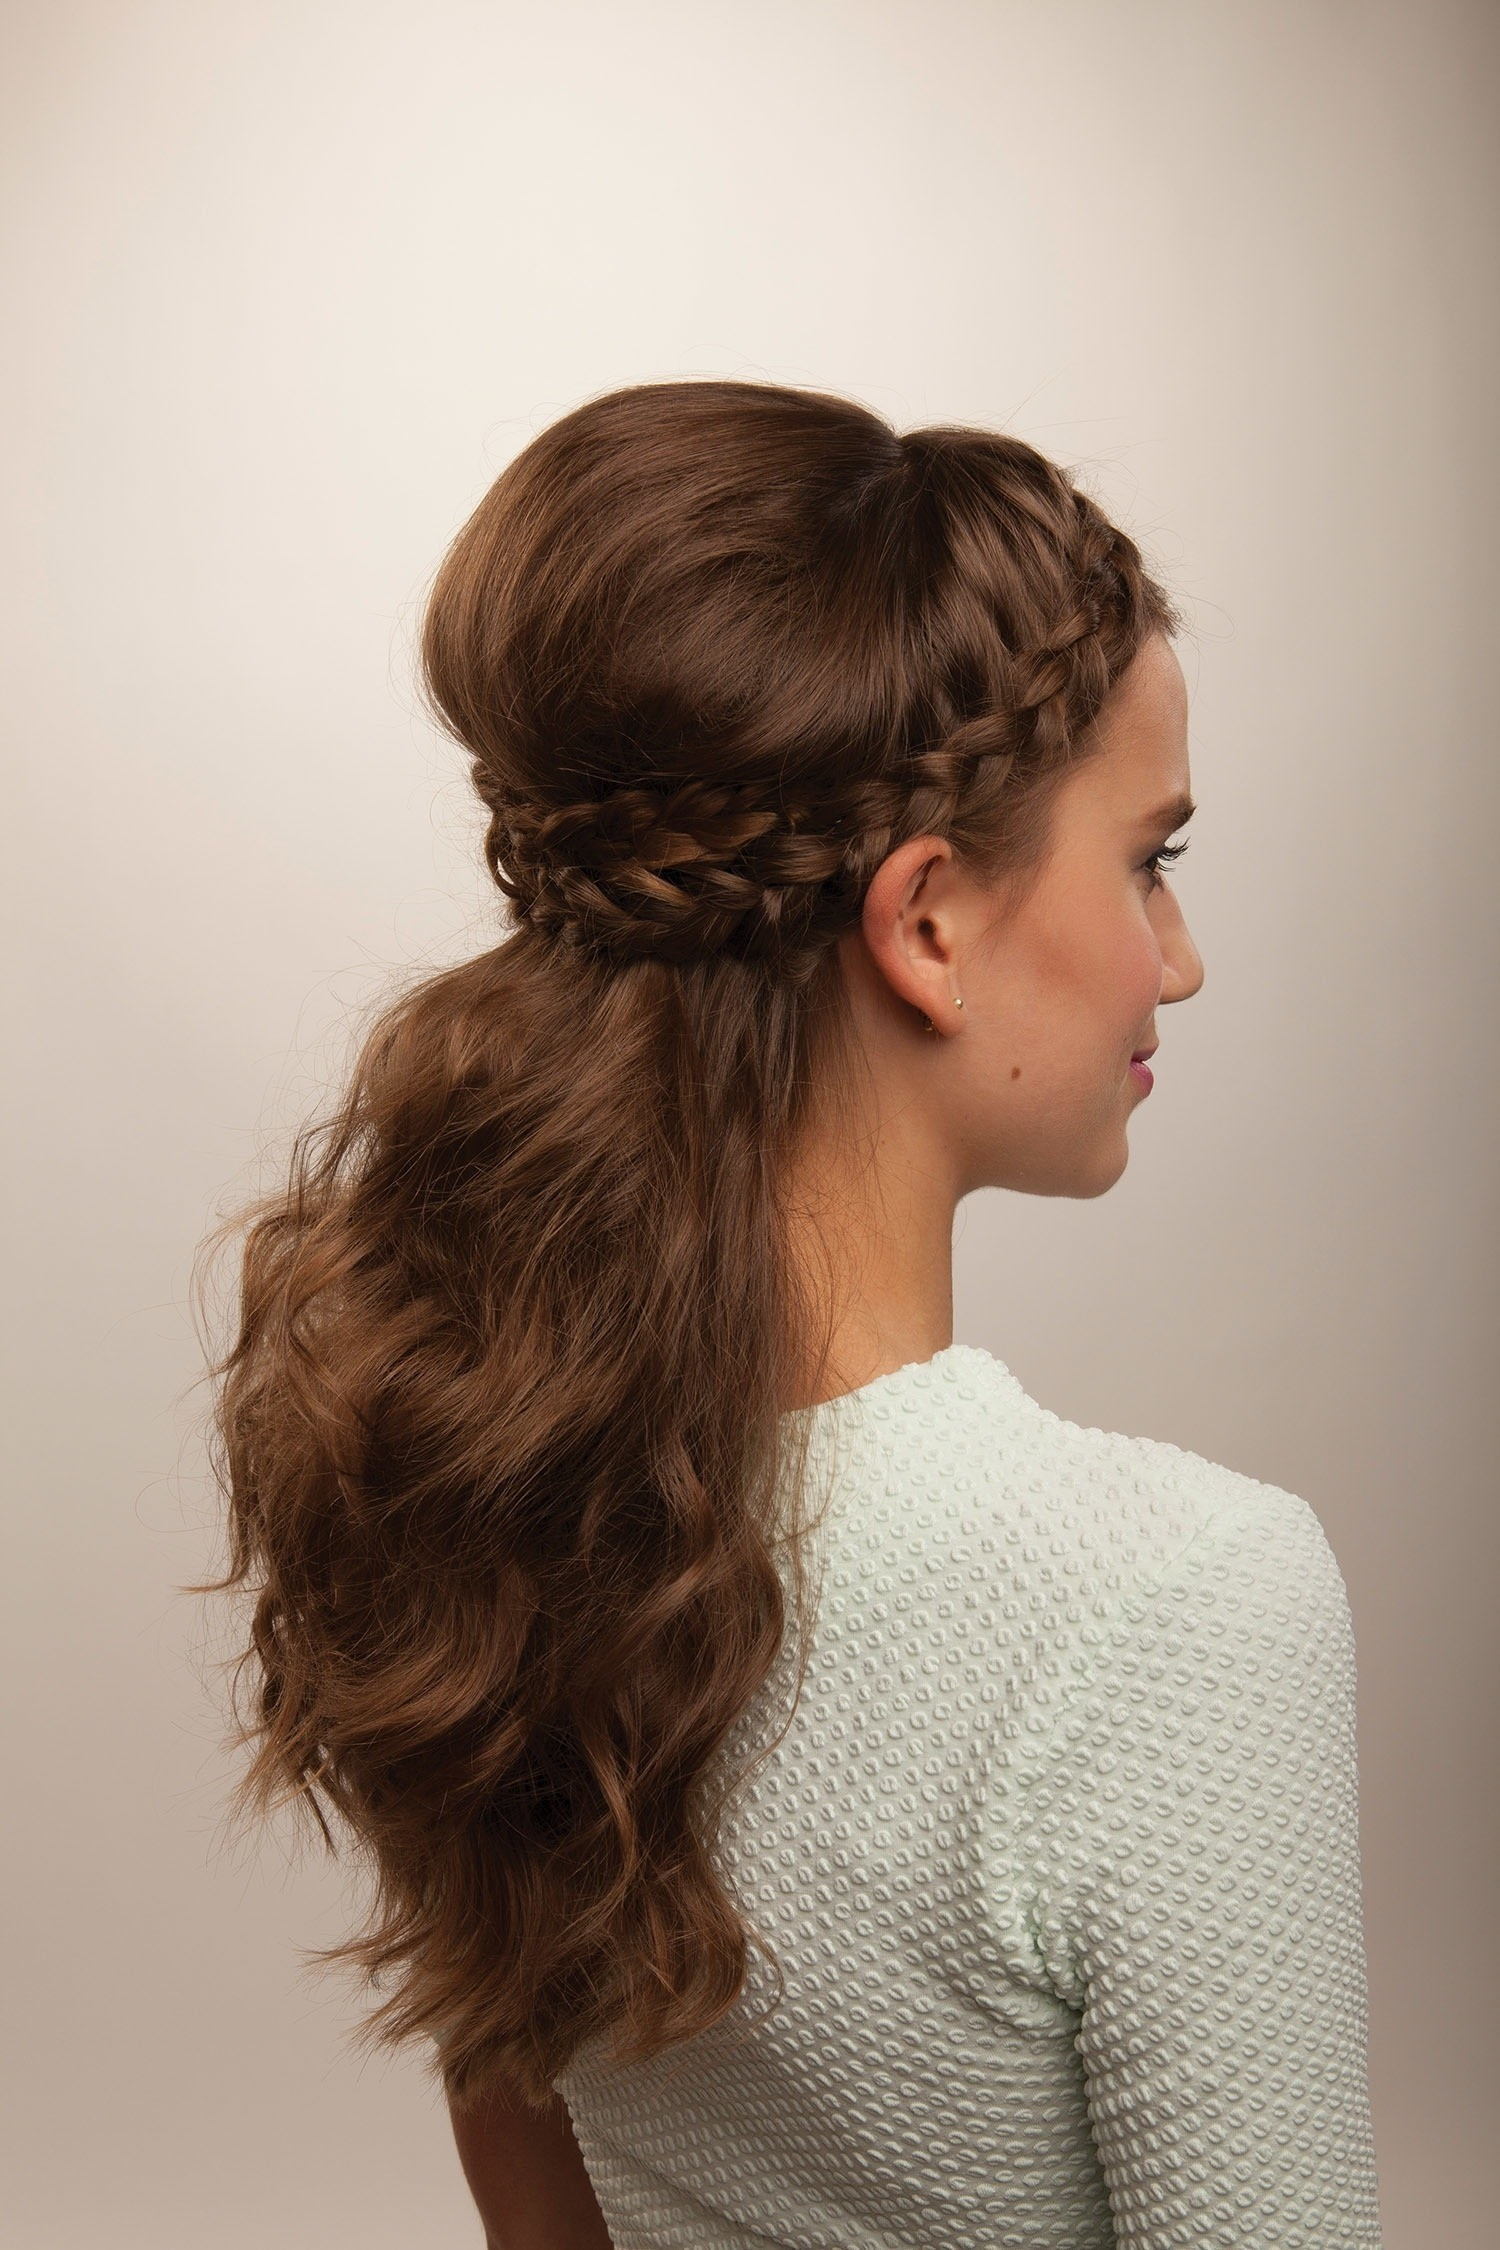 Half Crown Braid 183 Extract From Stunning Braids By Monae